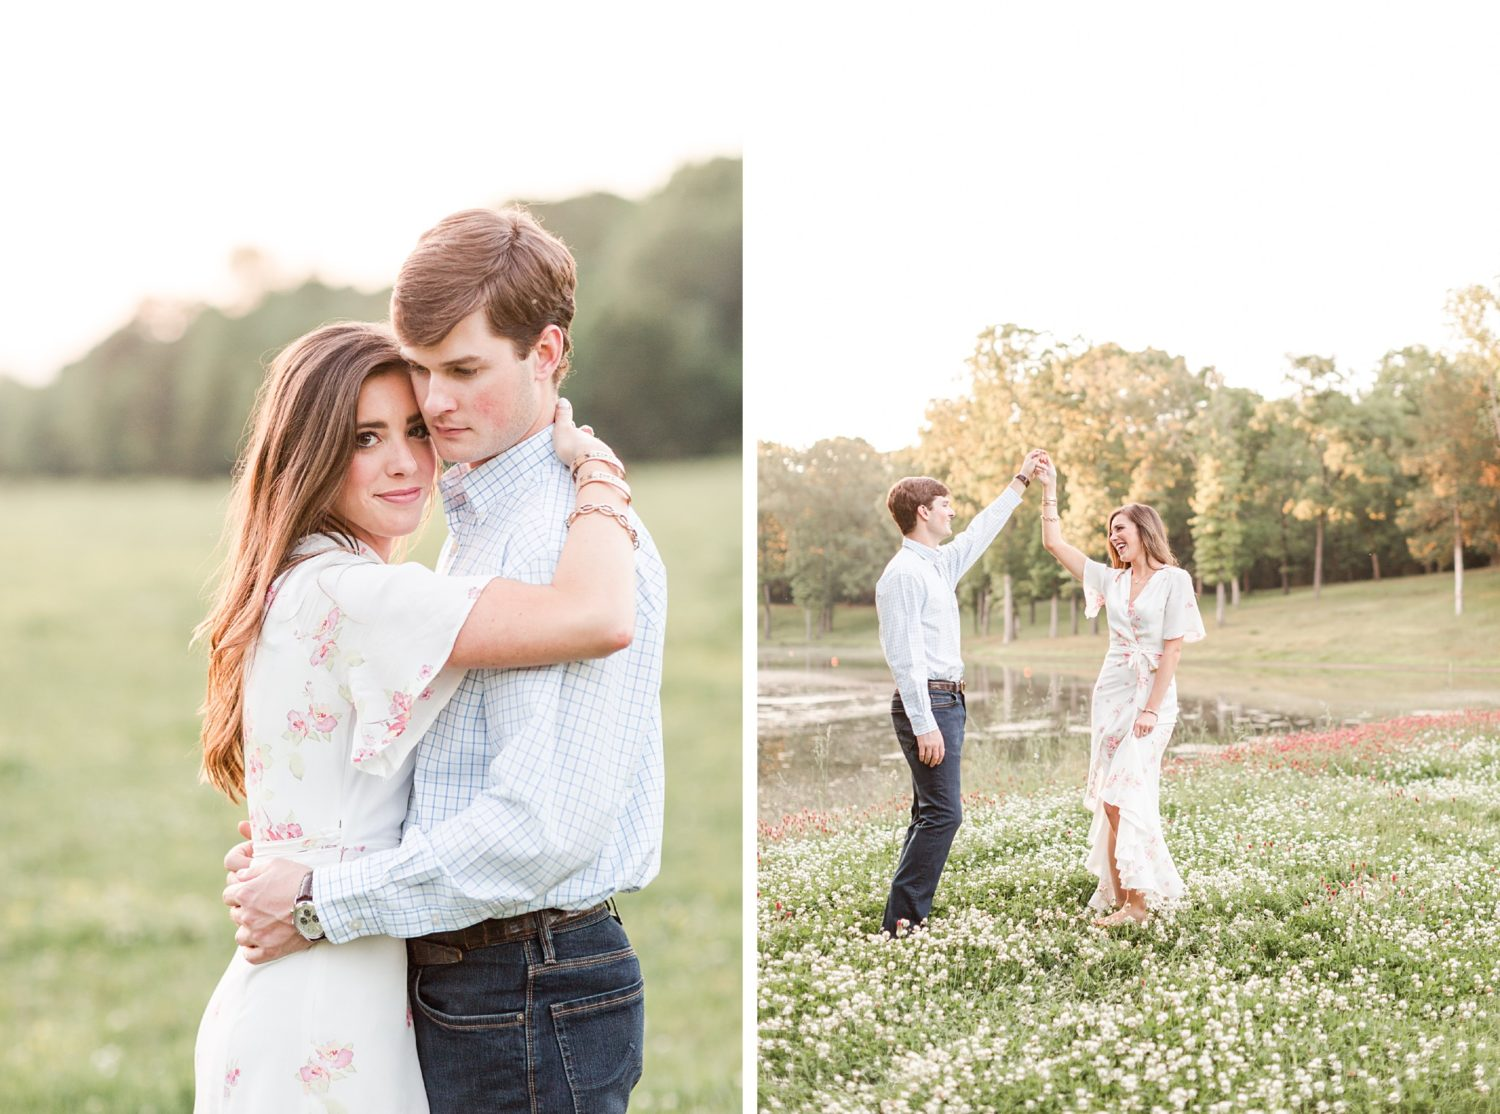 http://amy-hutchinson.com/wp-content/uploads/2018/05/ahp-summer-tennessee-farm-engagement_0026.jpg